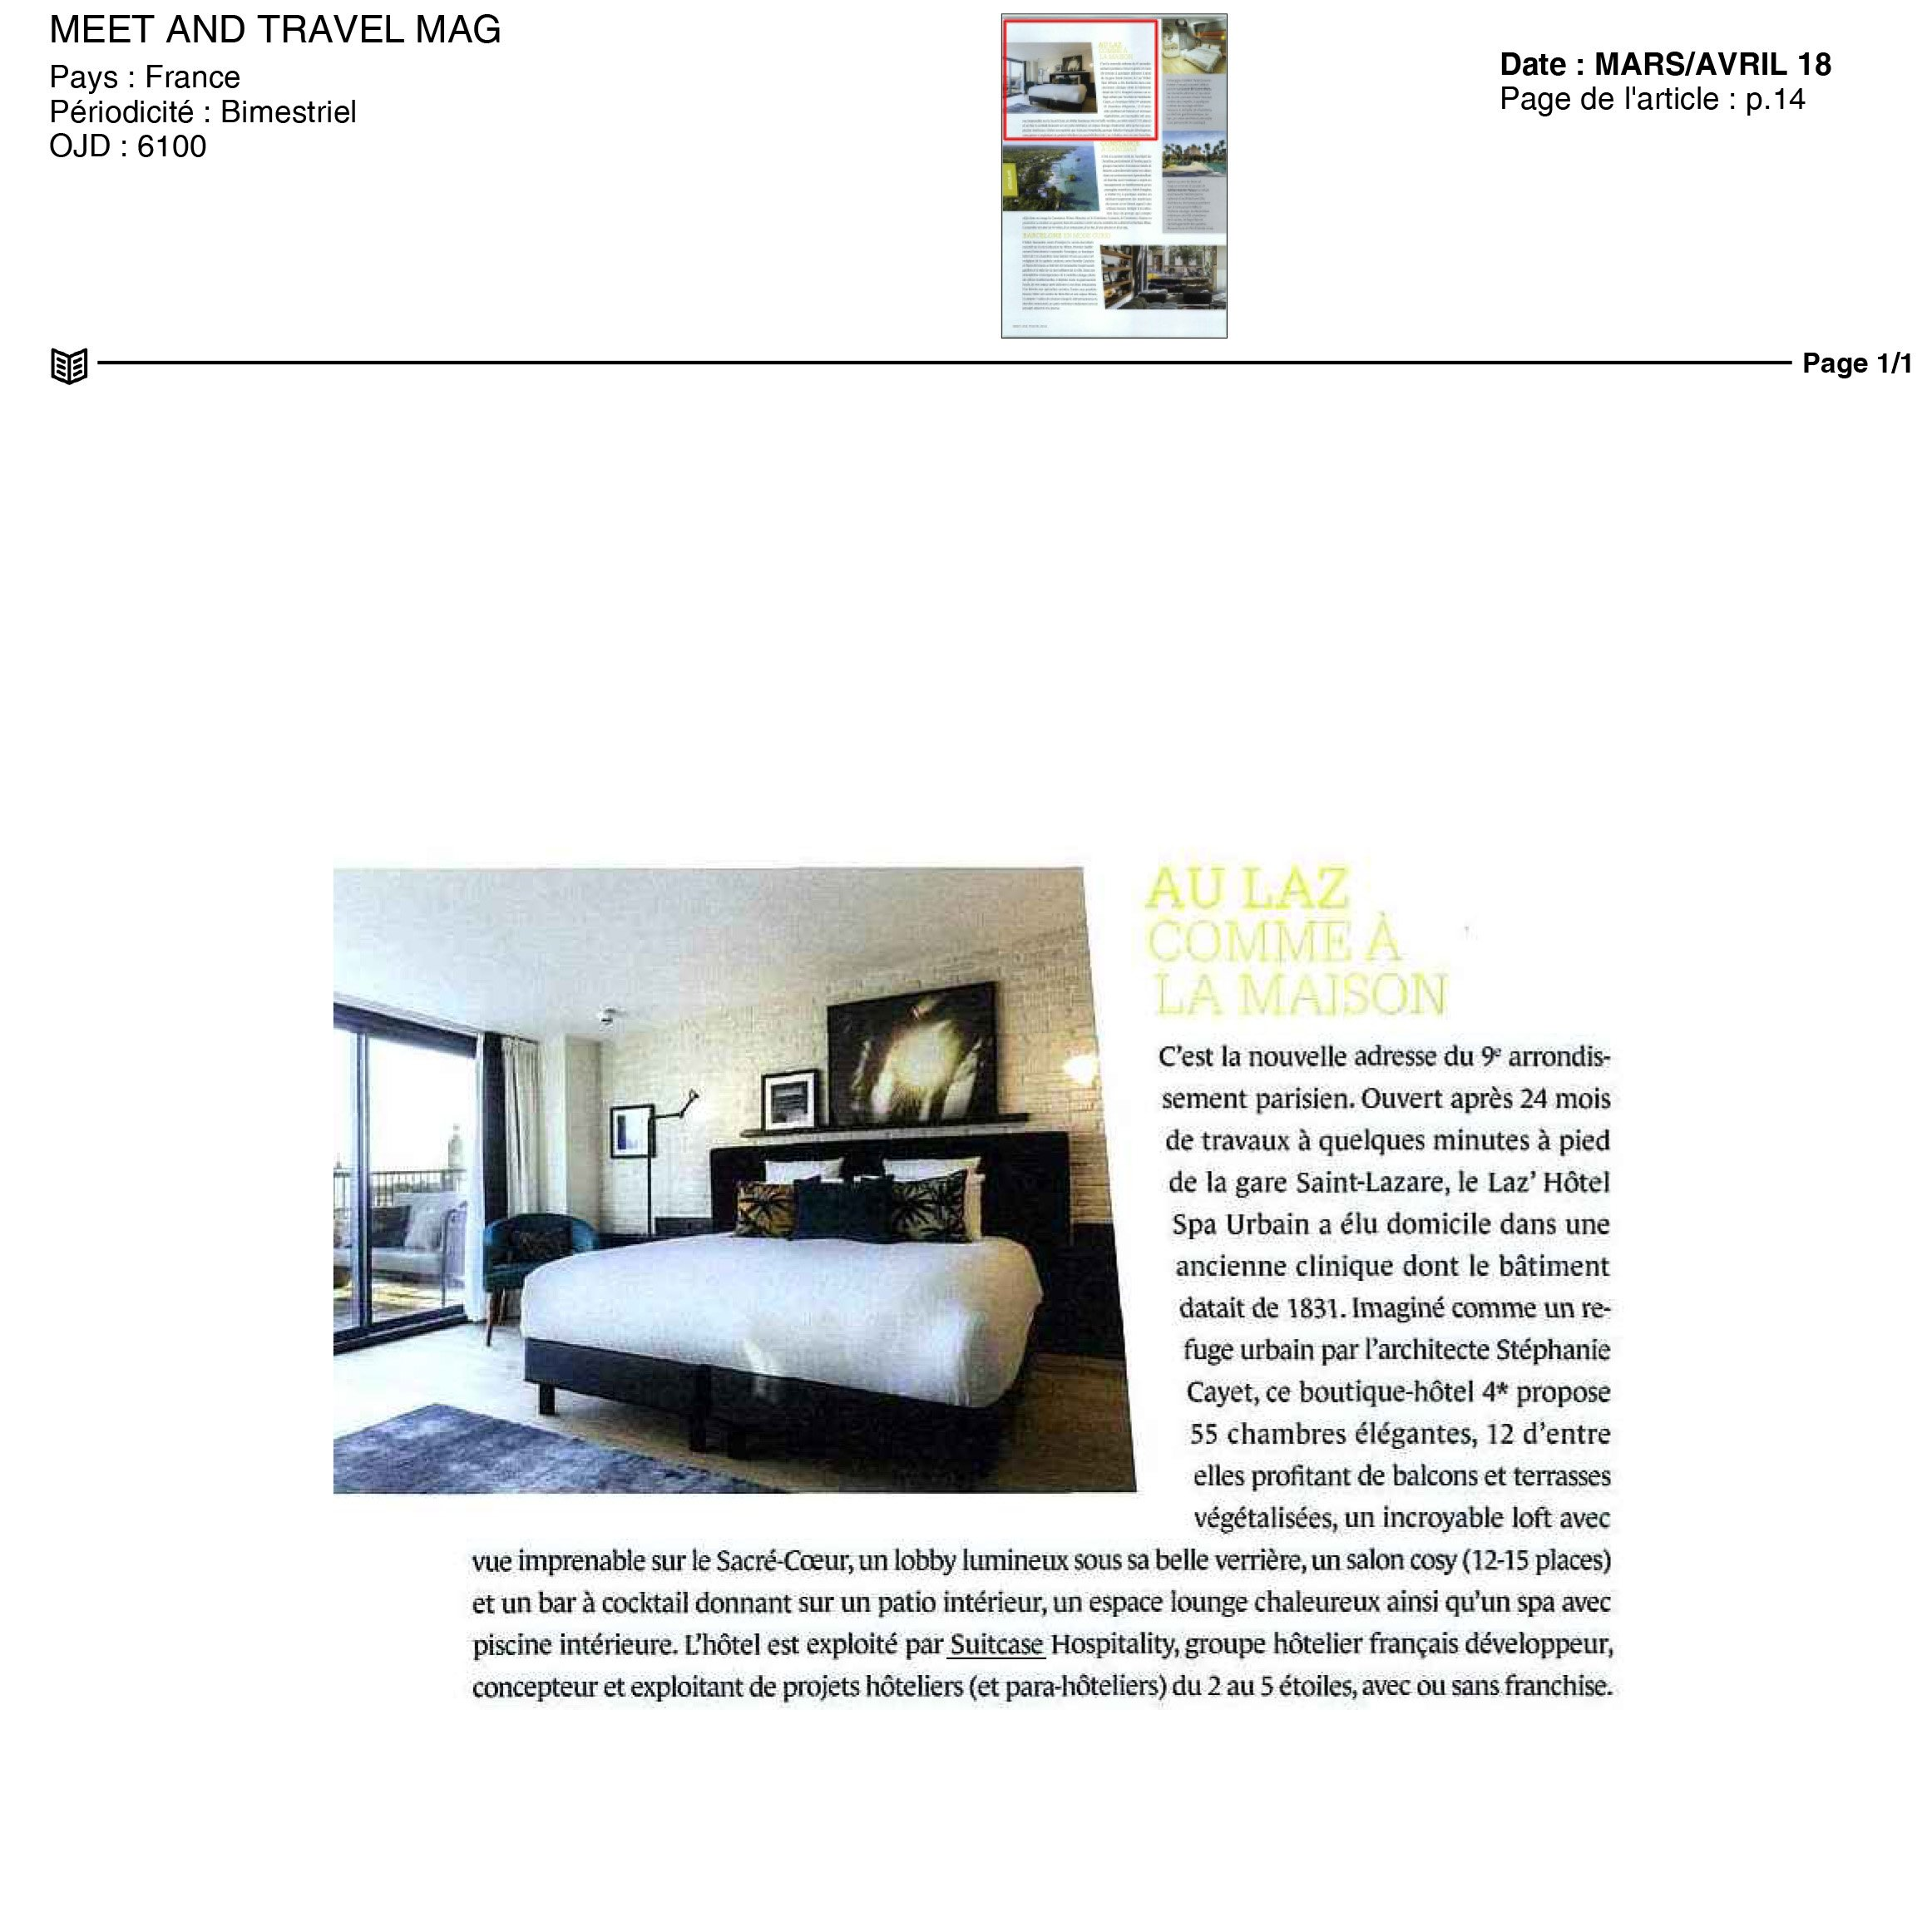 MEET TRAVEL MAG Article HOTEL 4 etoiles stephanie cayet architecture interieure design